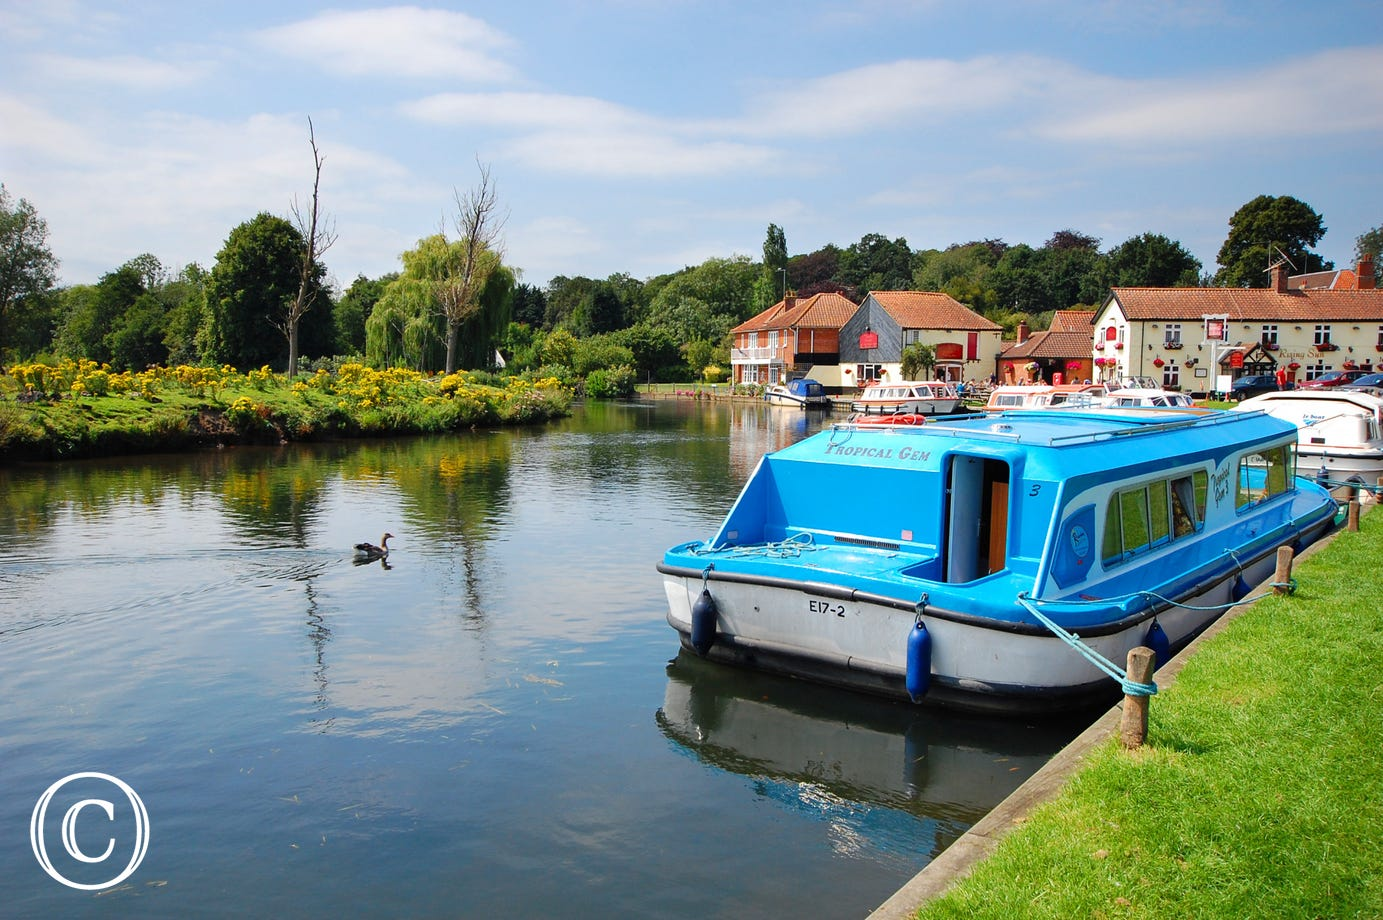 The property is 1 mile from the river Bure